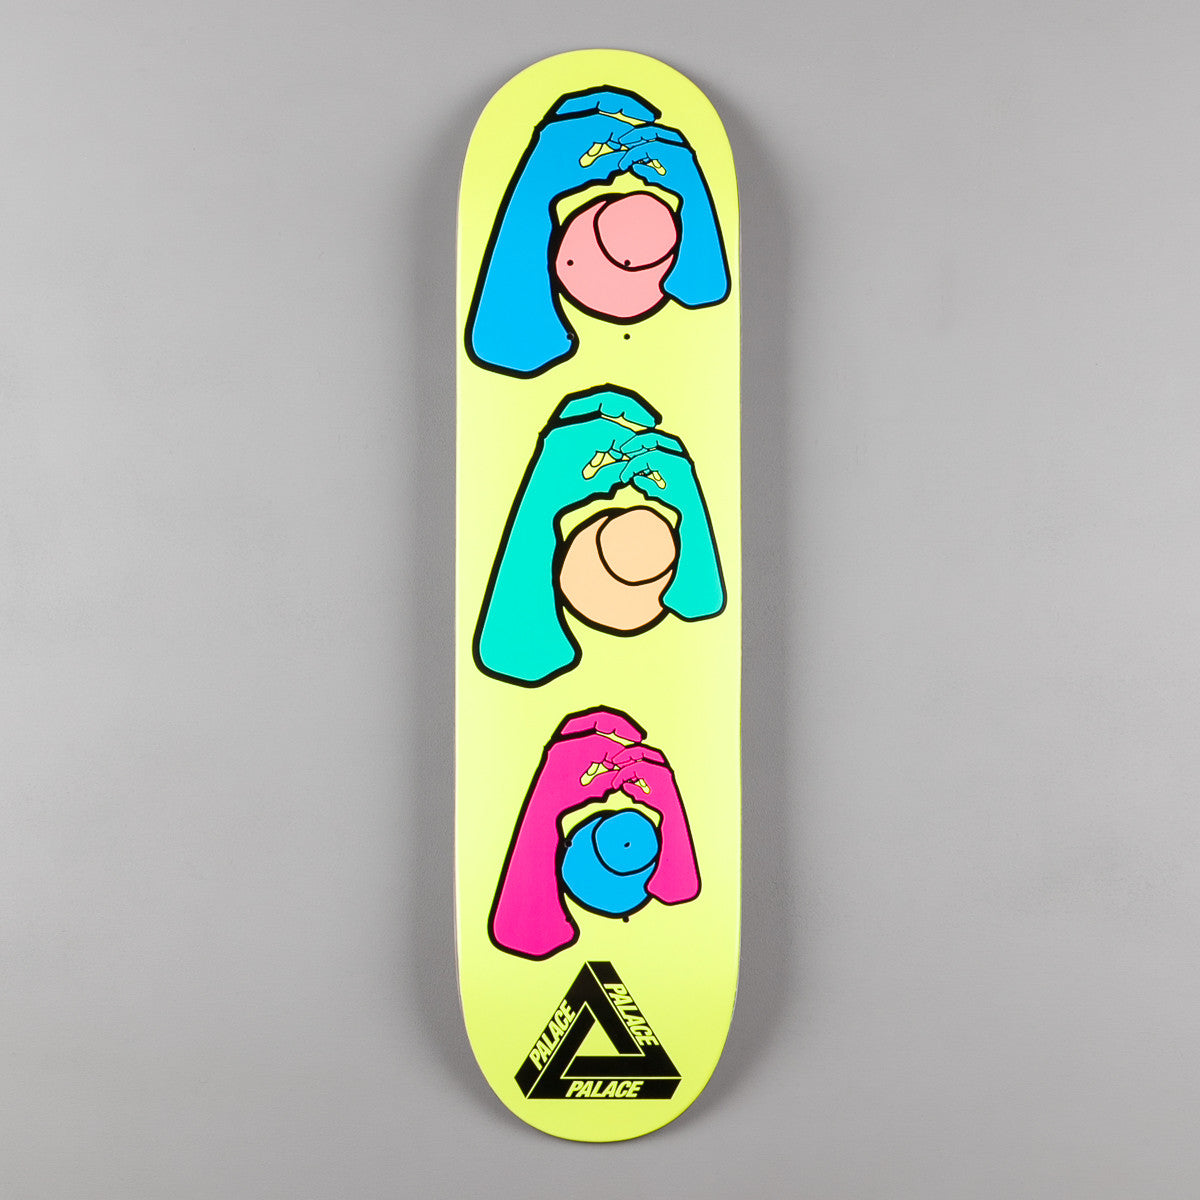 Palace Knight Hands 1 Deck - 8.1""